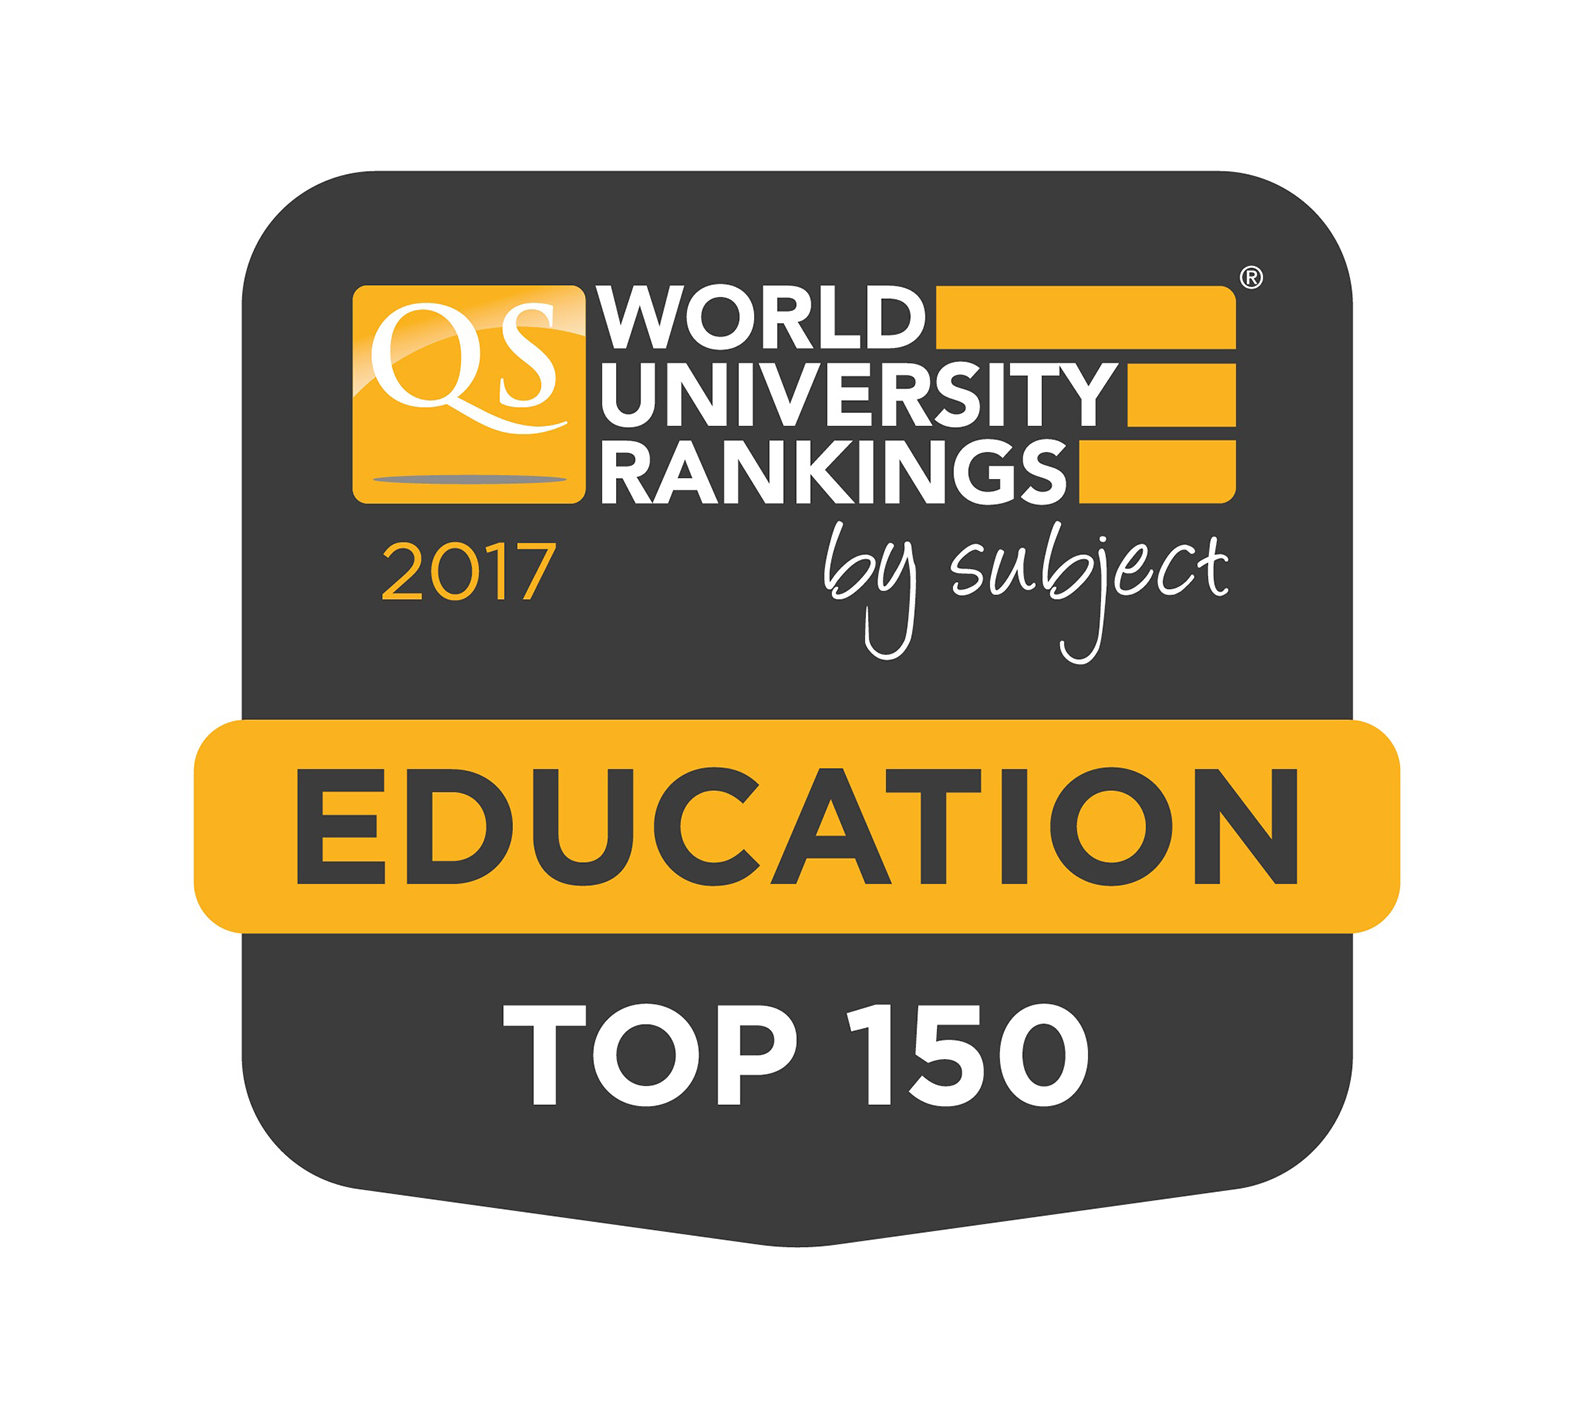 Western is ranked in the Top 150 globally for Education